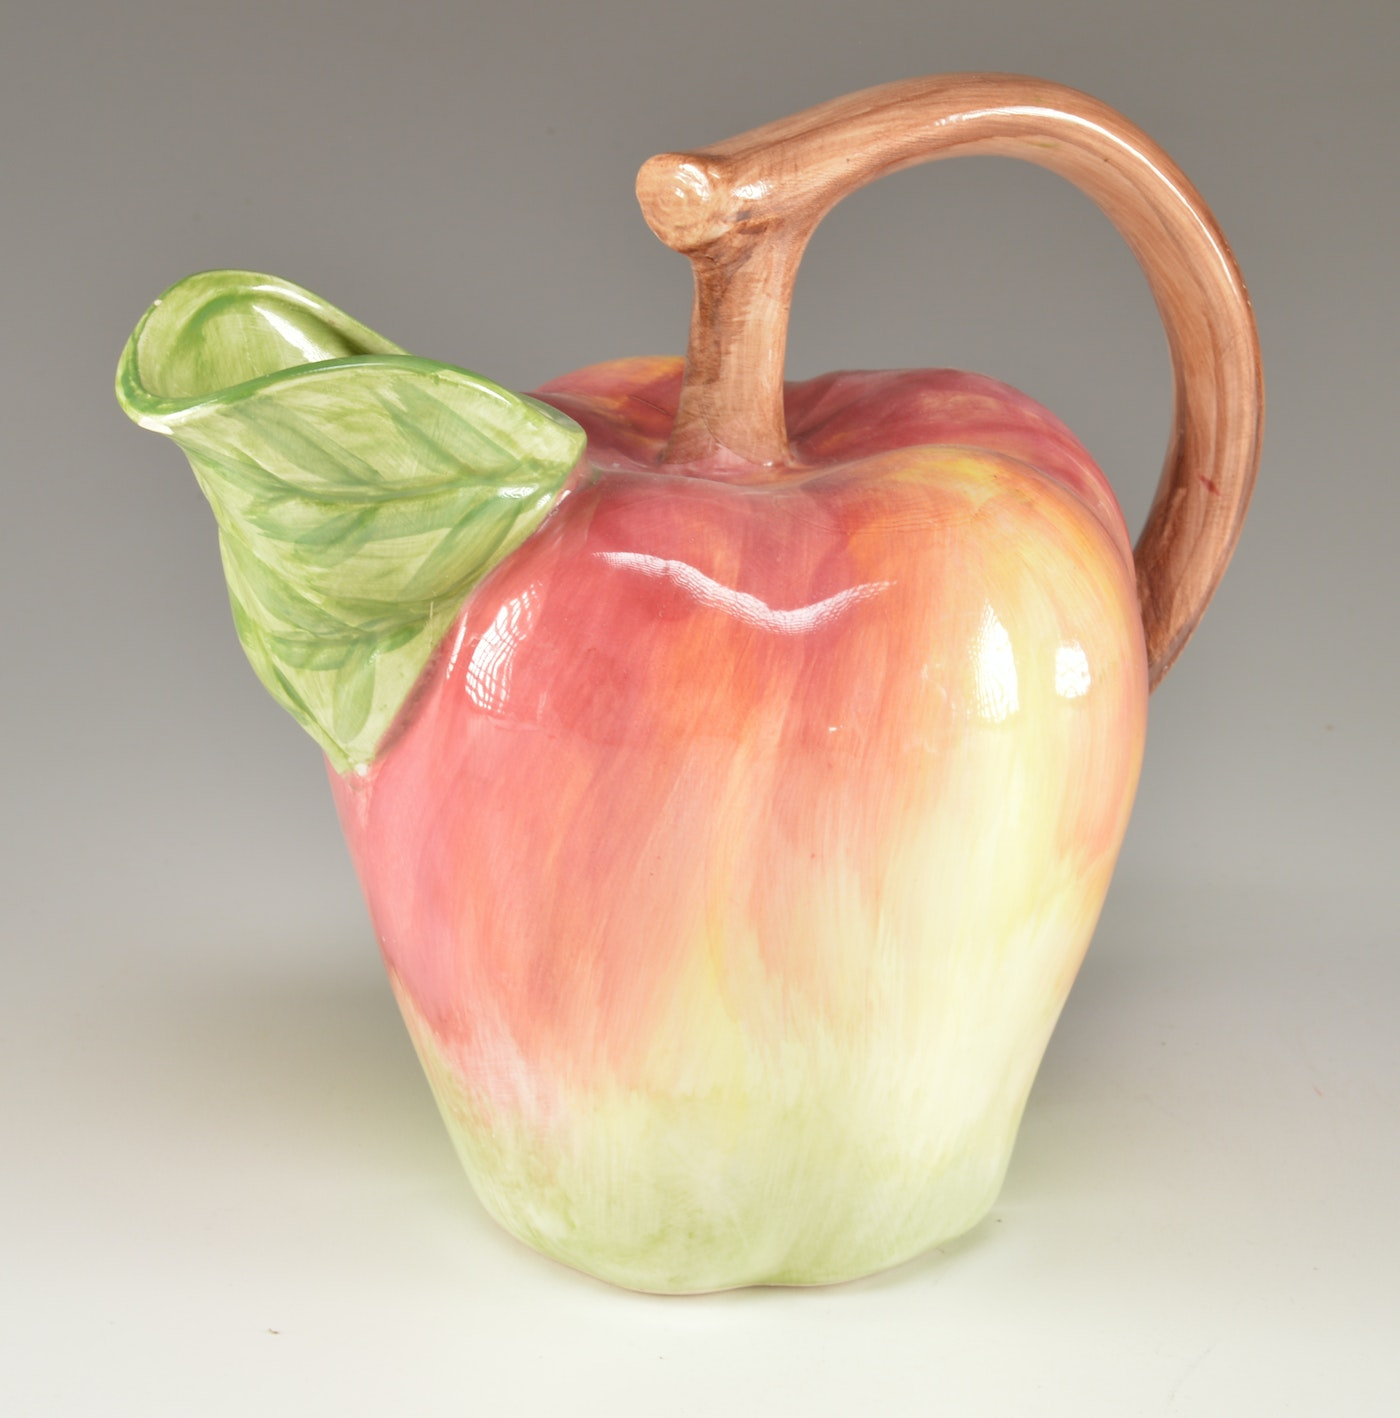 Pottery Barn Dish Haldon Apple Pitcher And Other Home